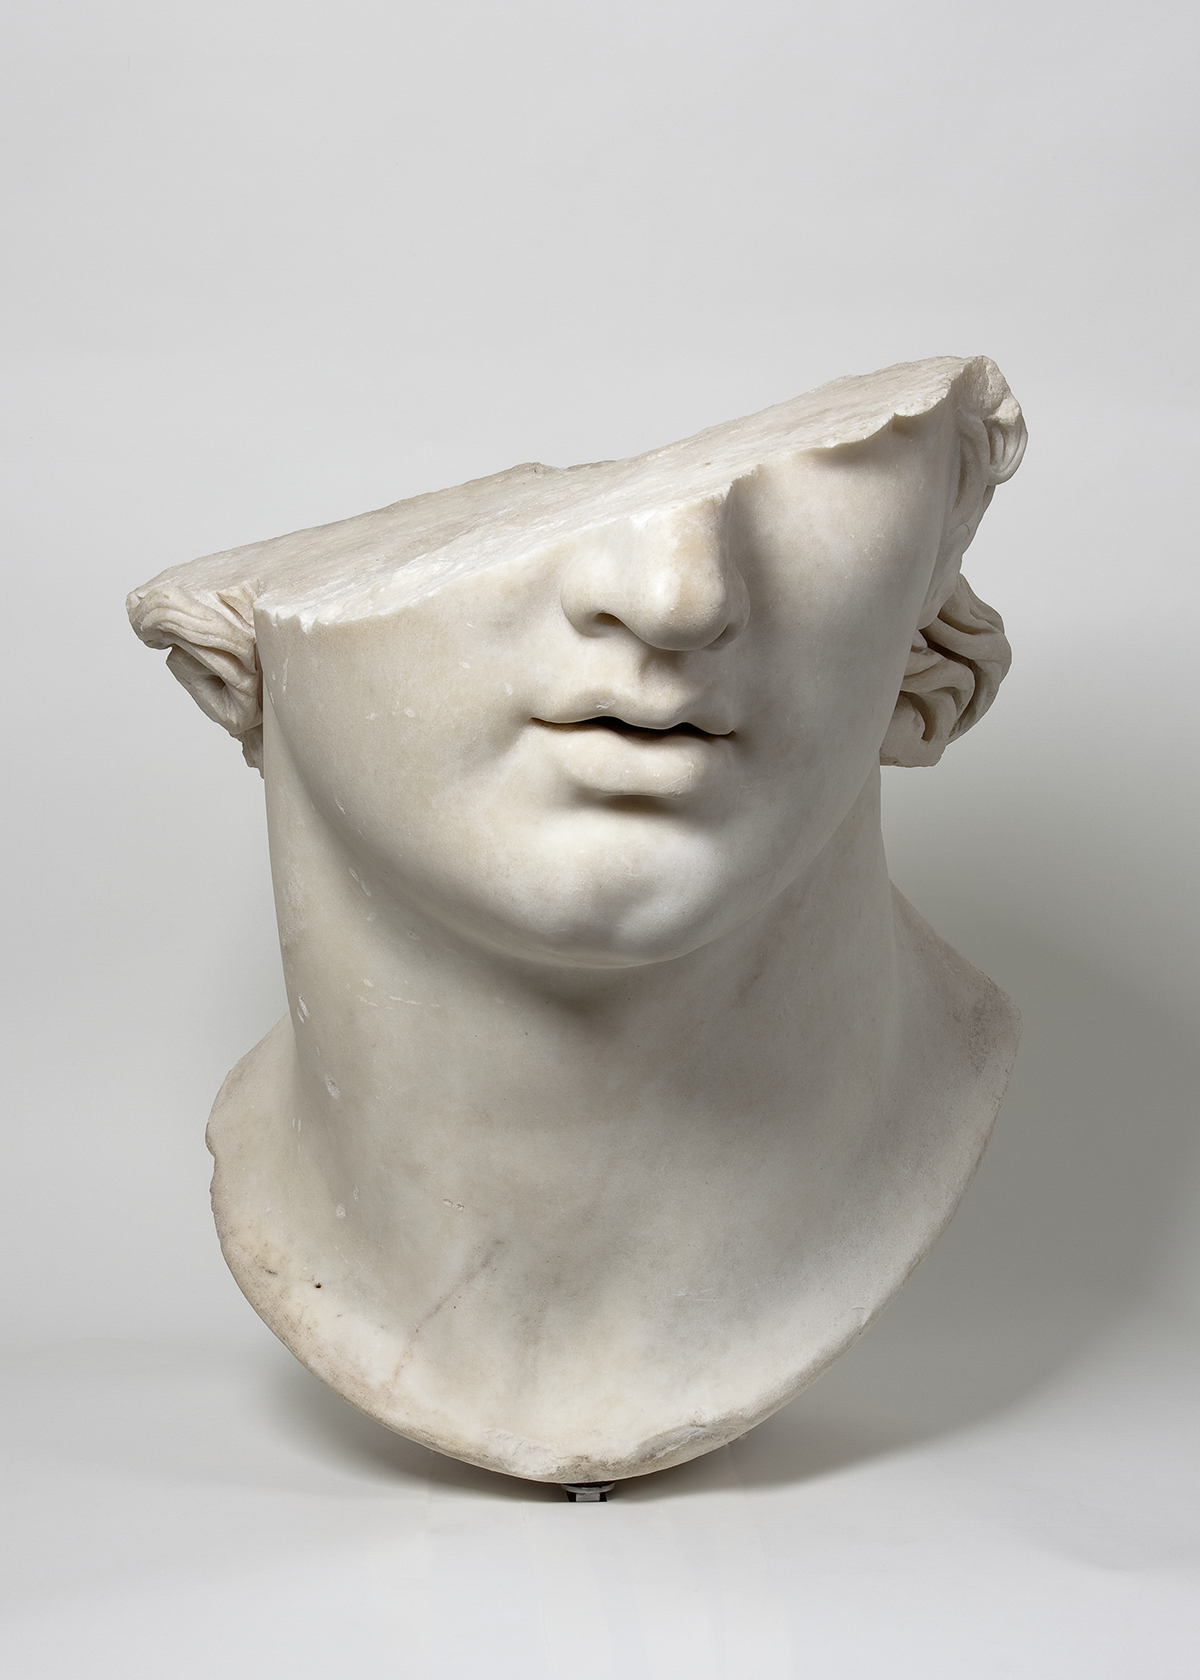 Fragmentary Colossal Head of a Youth.  Greek, Hellenistic period, 2nd century B.C.E. Marble. H. 22 7/8 in. (58 cm). Antikensammlung, Staatliche Museen zu Berlin (AvP VII 283). (Image: © SMB / Antikensammlung)